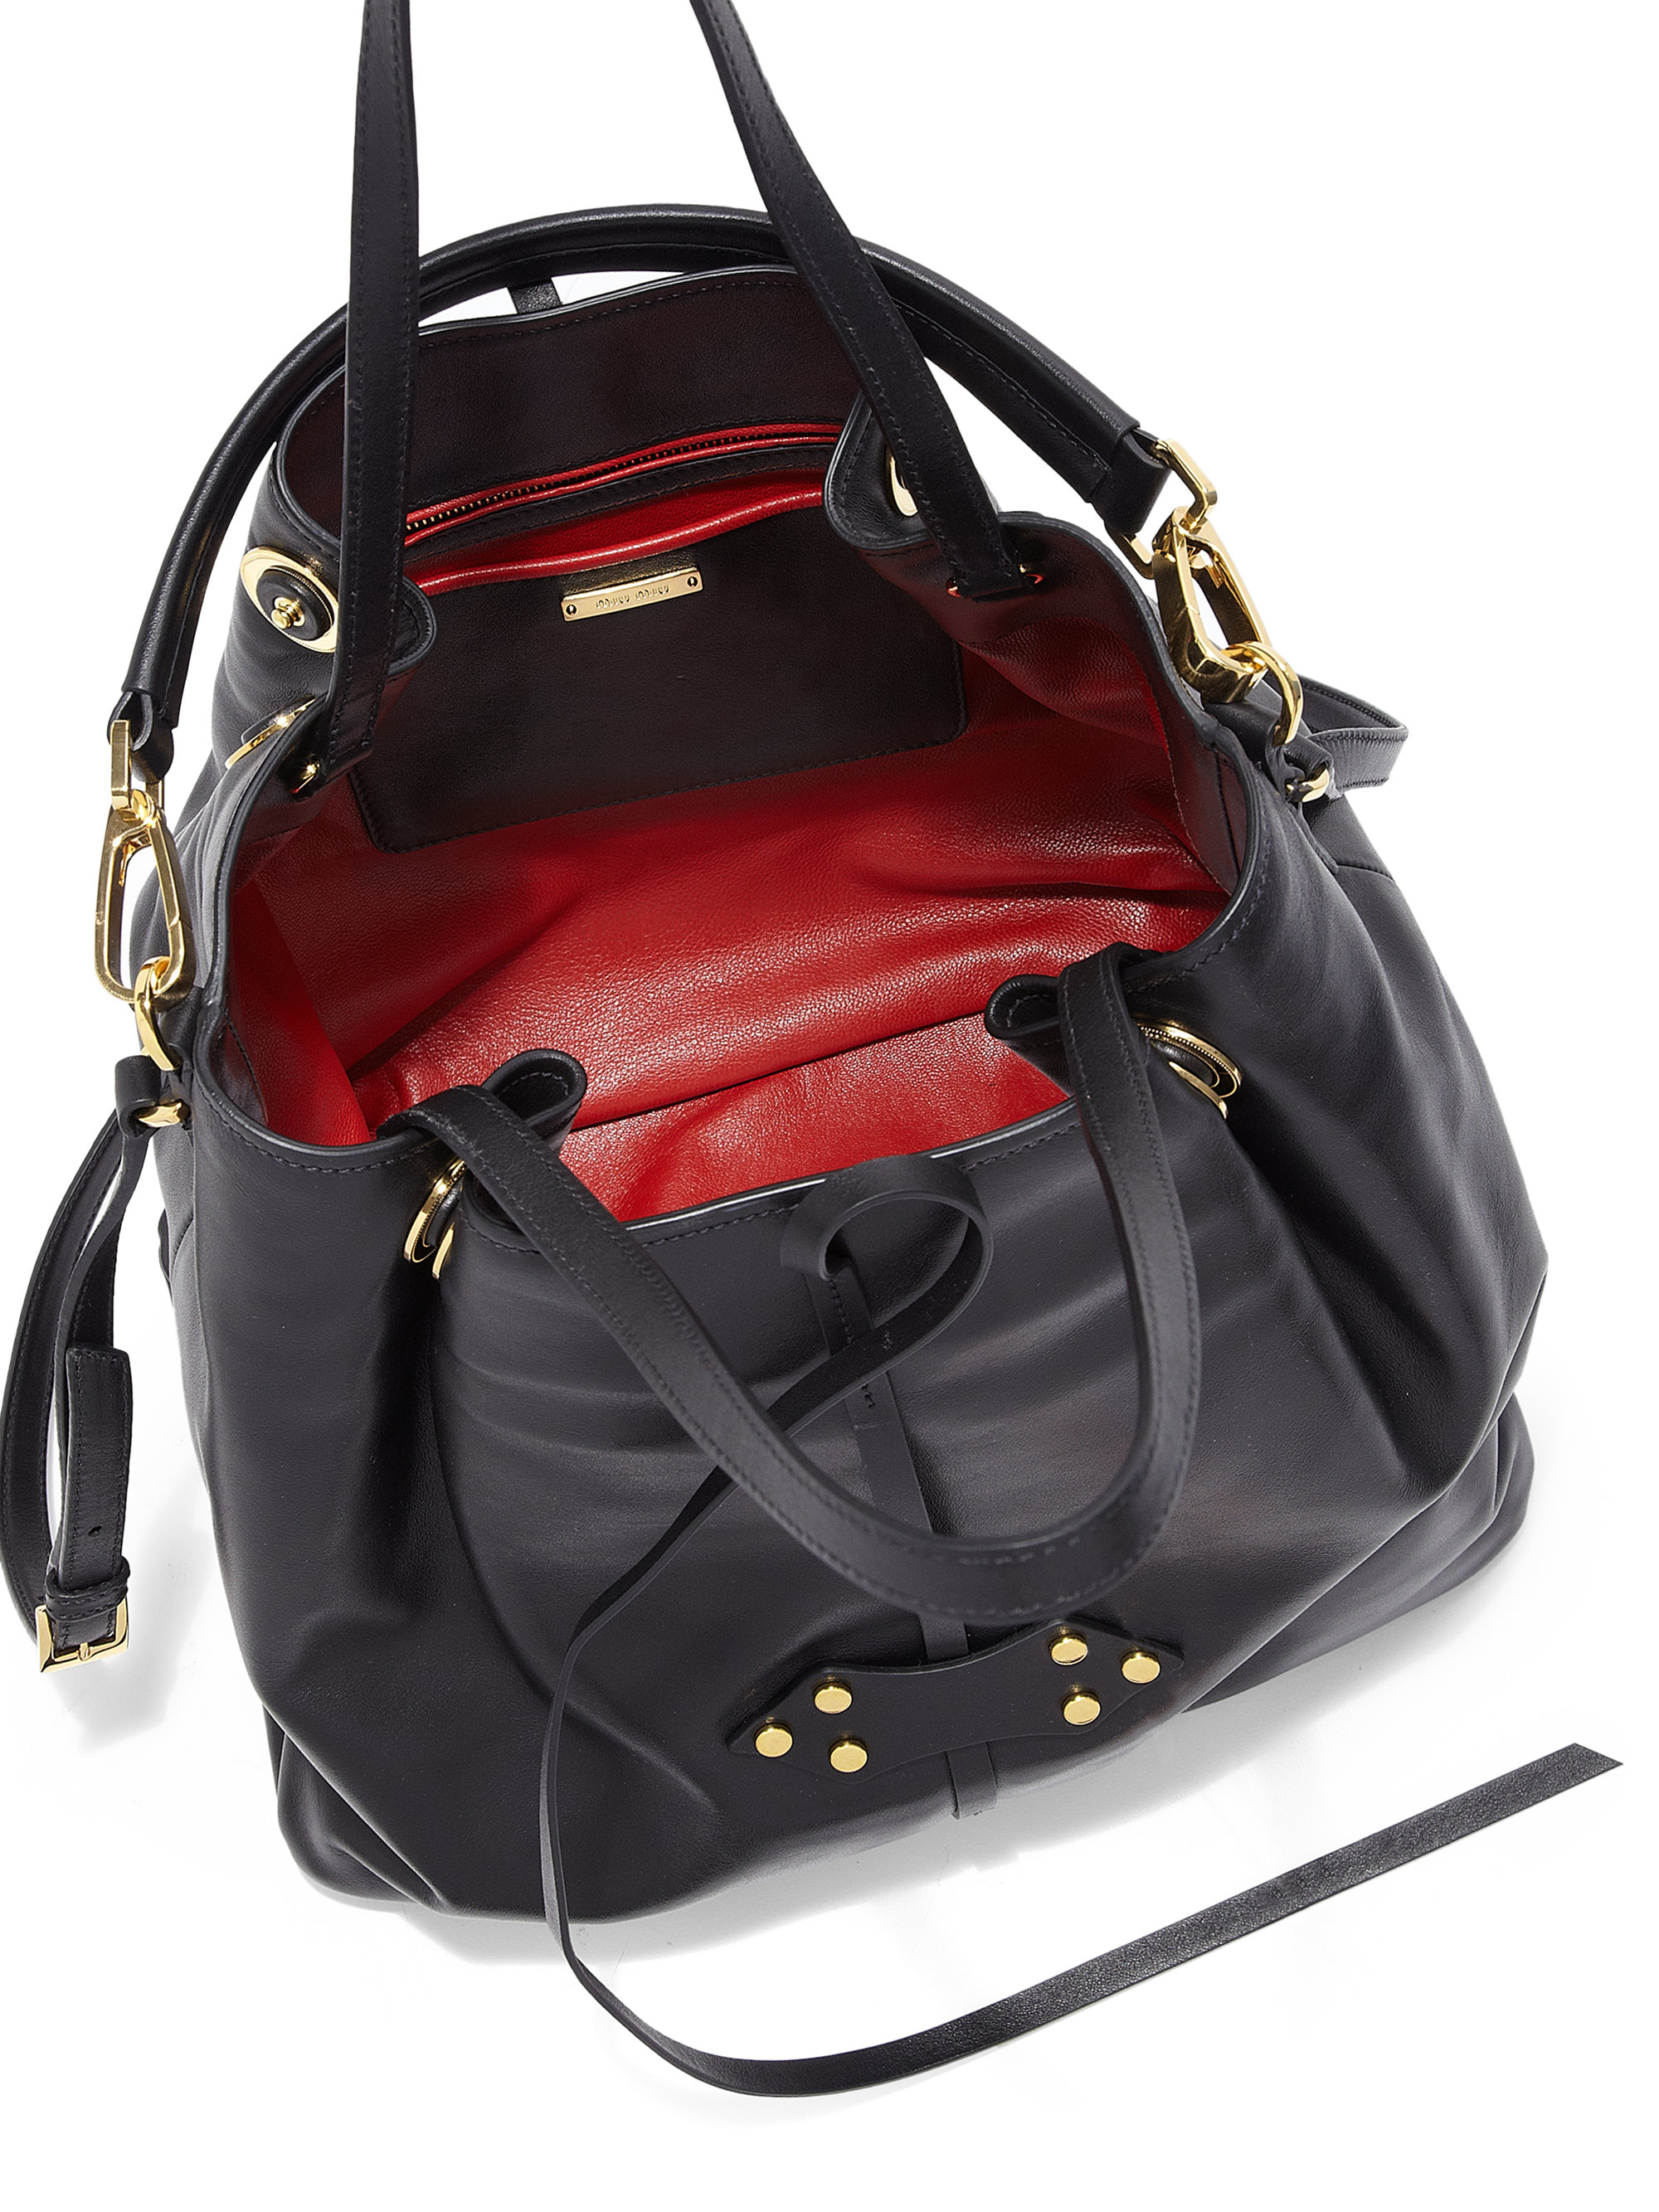 636627cddc4f Fantastic Lyst - Miu Miu Large Vitello Soft Bucket Bag in Black VY85